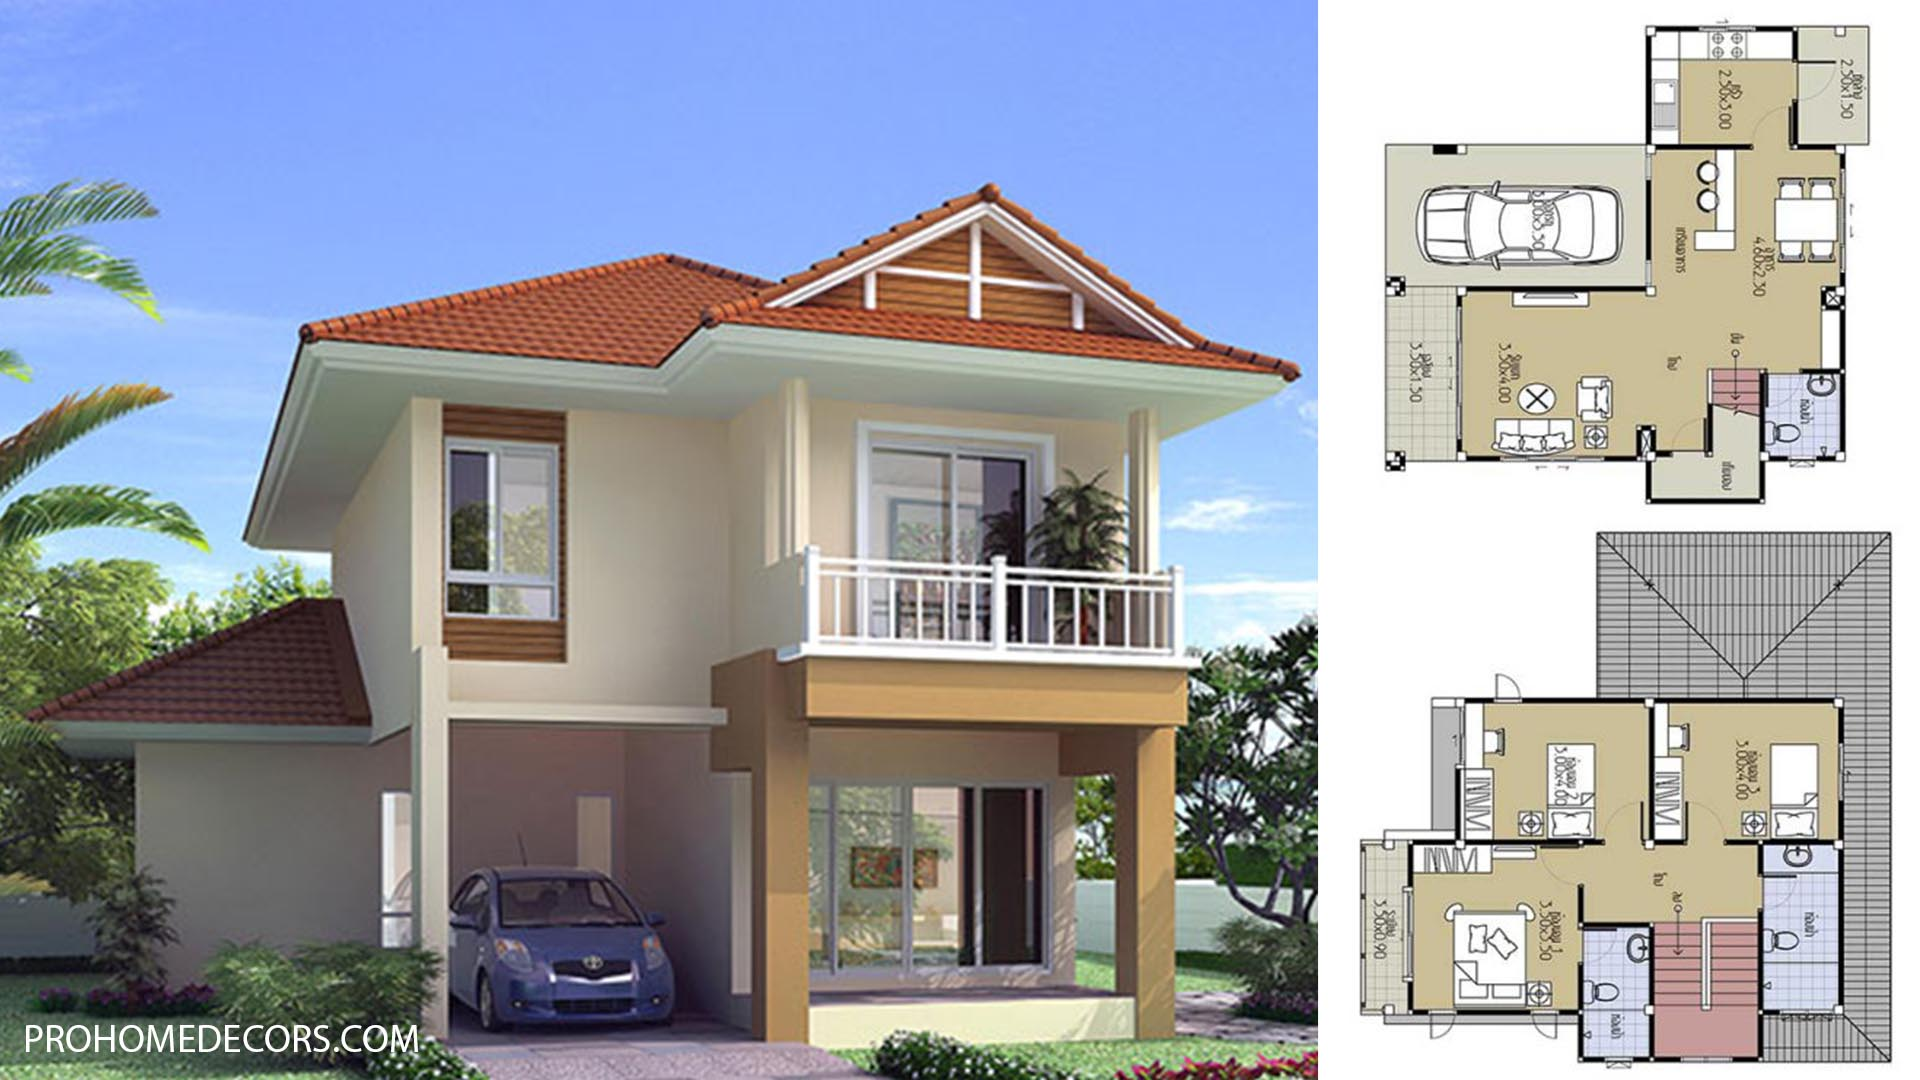 House Plans 9×9.5 with 3 Beds